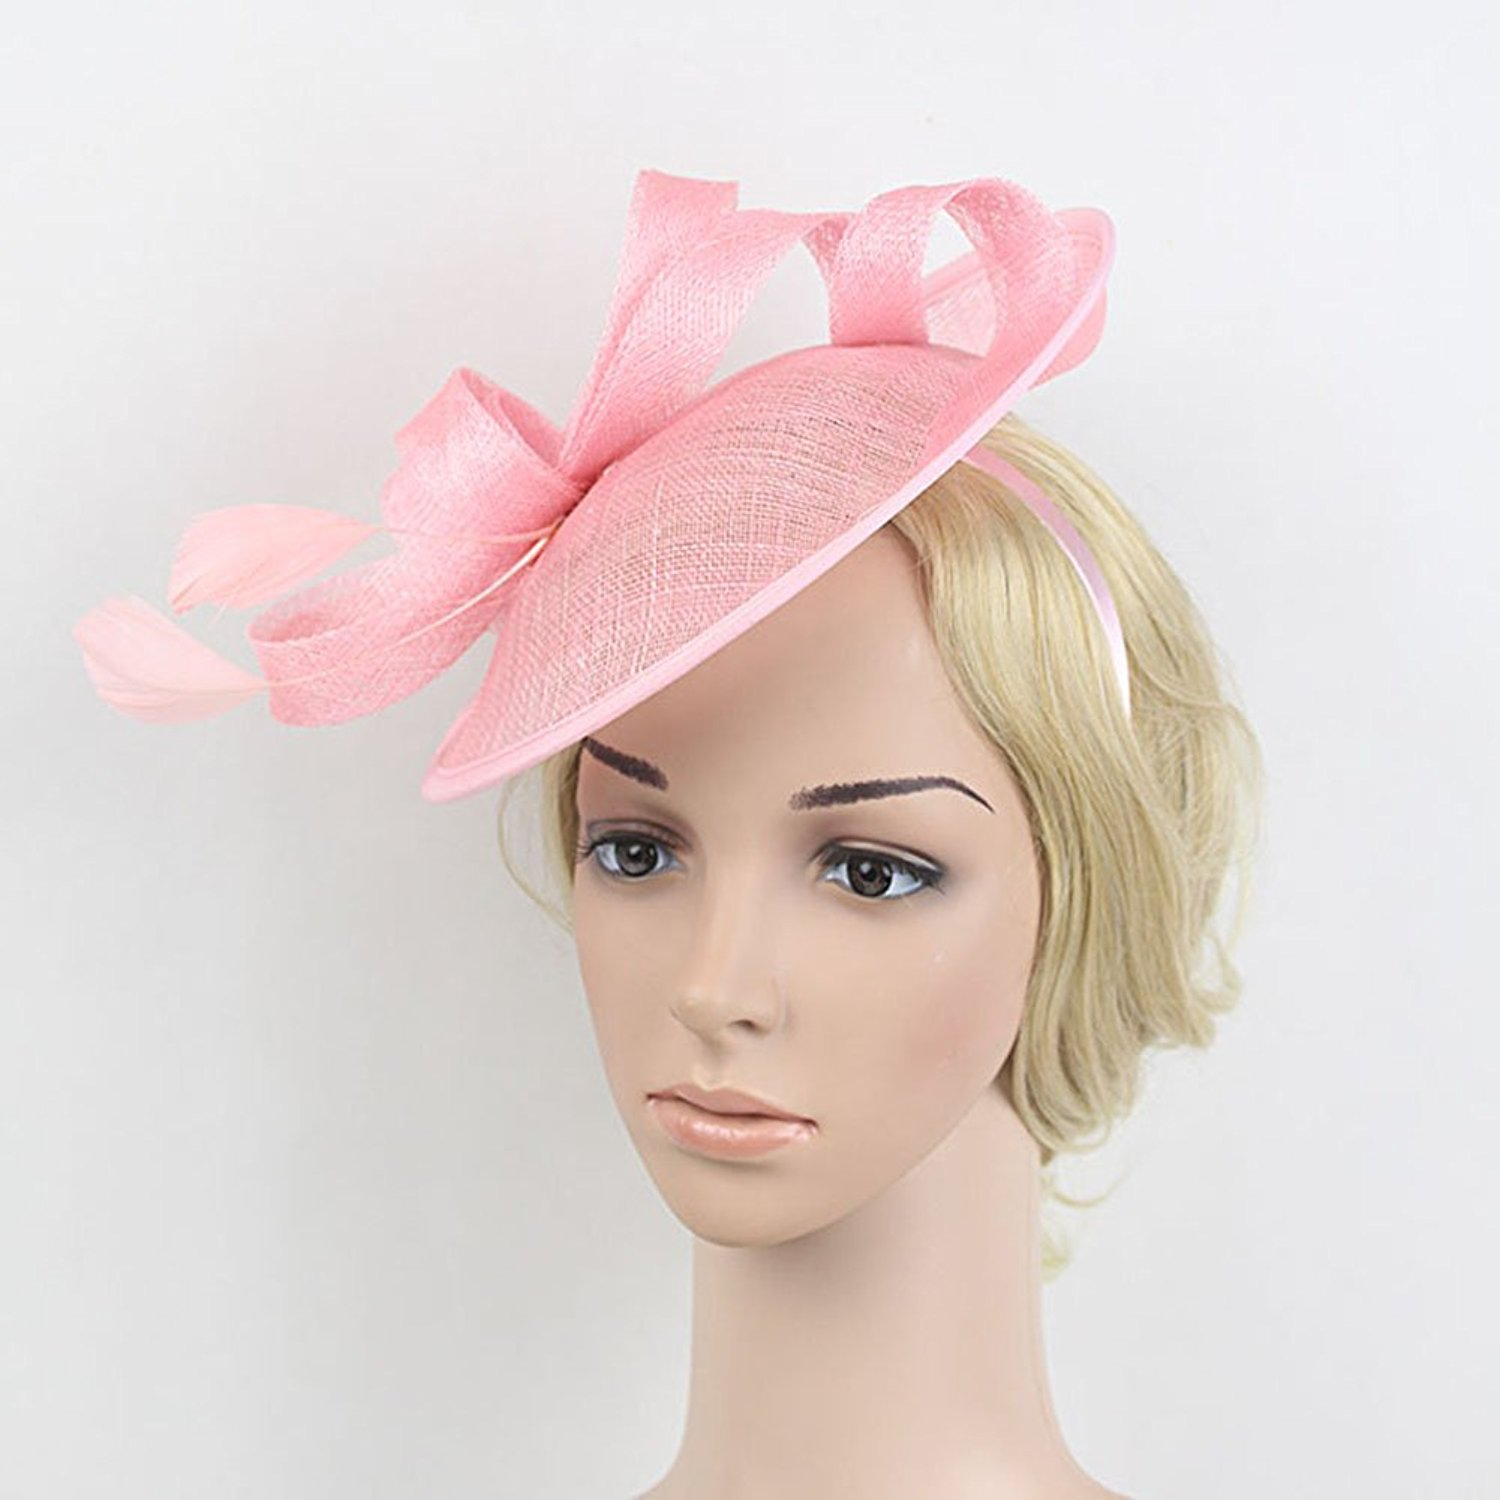 a0428c86 Fashion Pink Sinamay Top Hat Headband Hair Fascinator For Woman Cute Flower  Feather Hair Band Girls Holdiay Fancy Show Headpiece